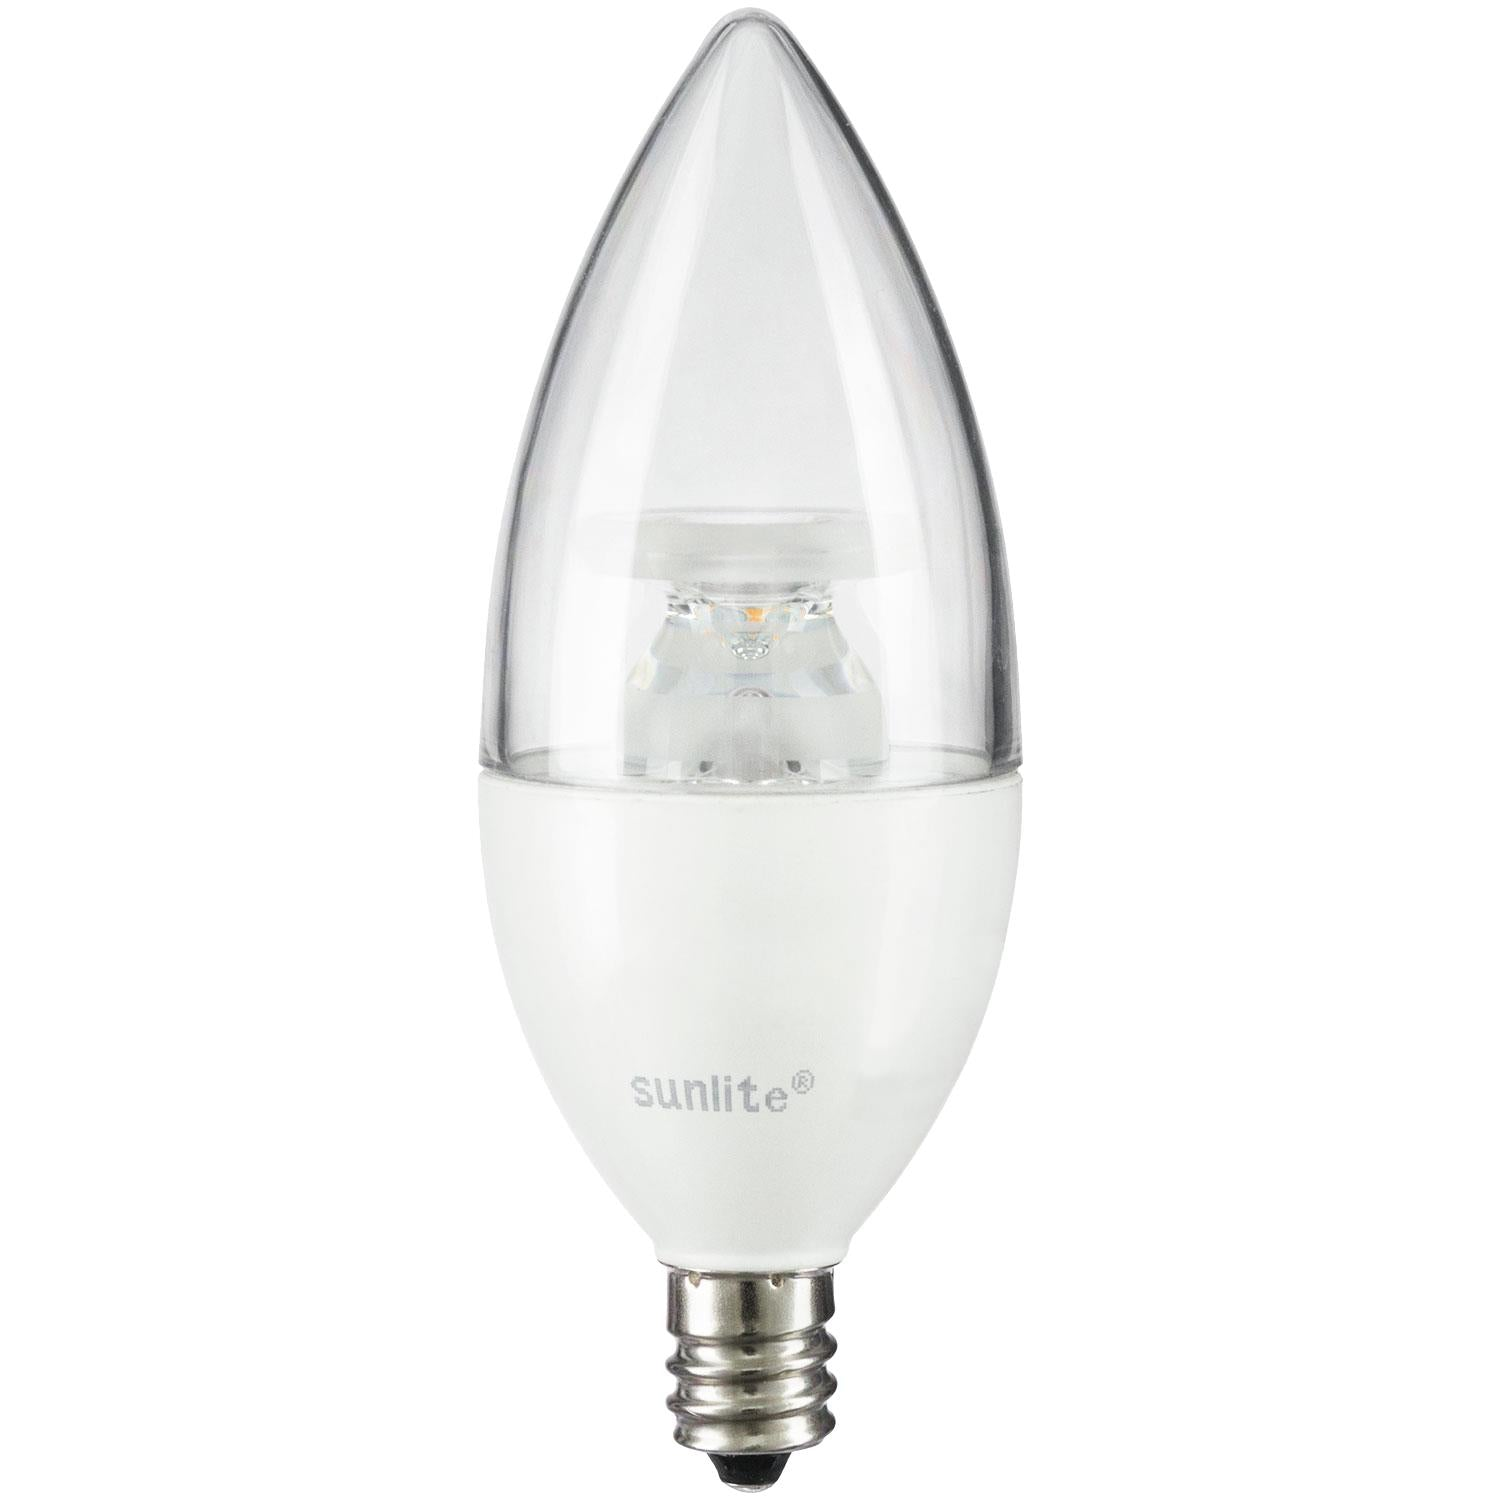 SUNLITE 80770-SU LED Torpedo Tip Chandelier 5w Light Bulb 2700K Soft White